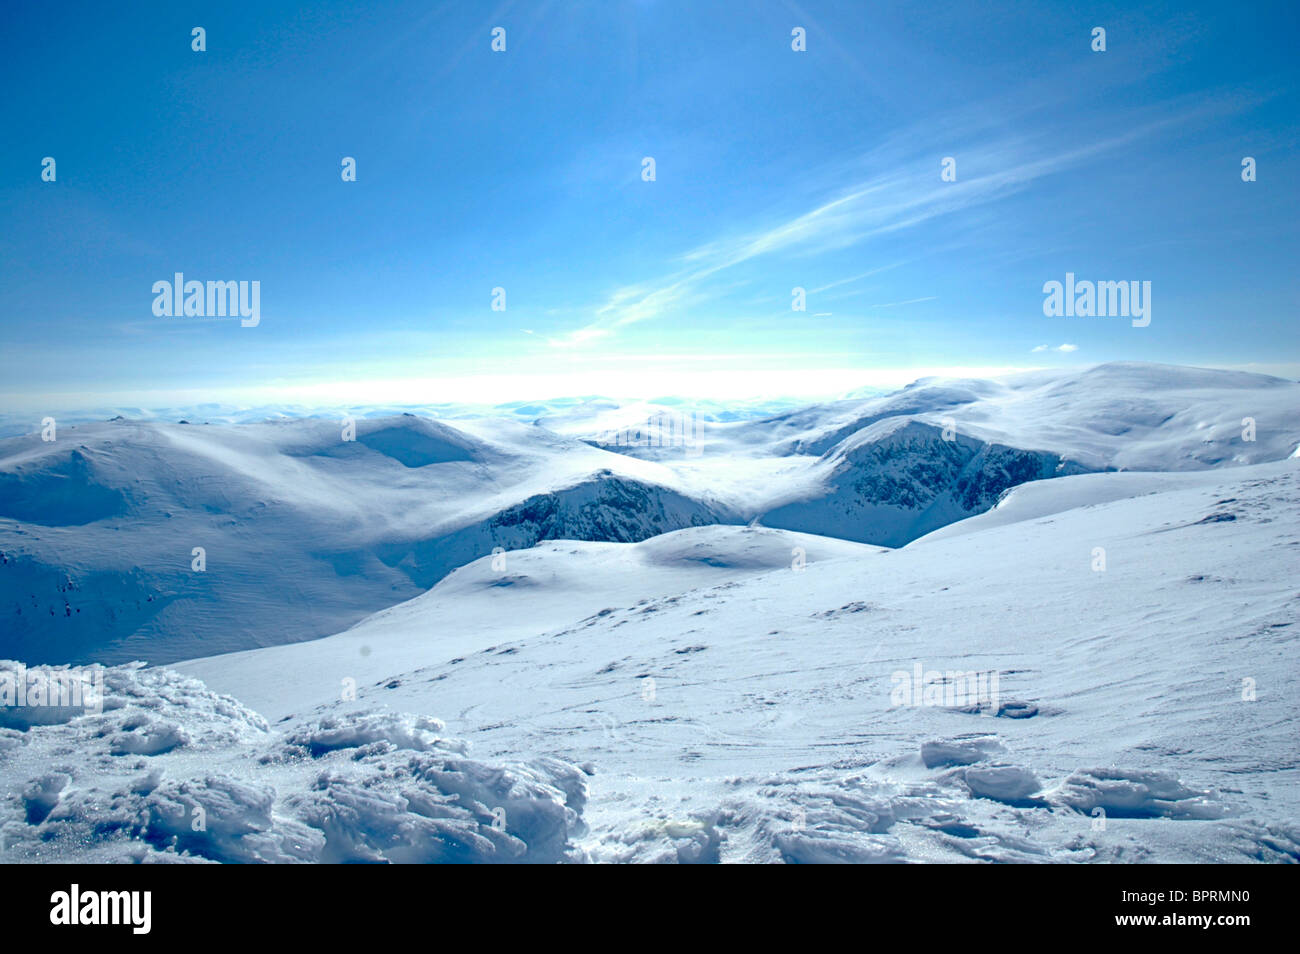 The Cairngorm Mountains in winter - Stock Image